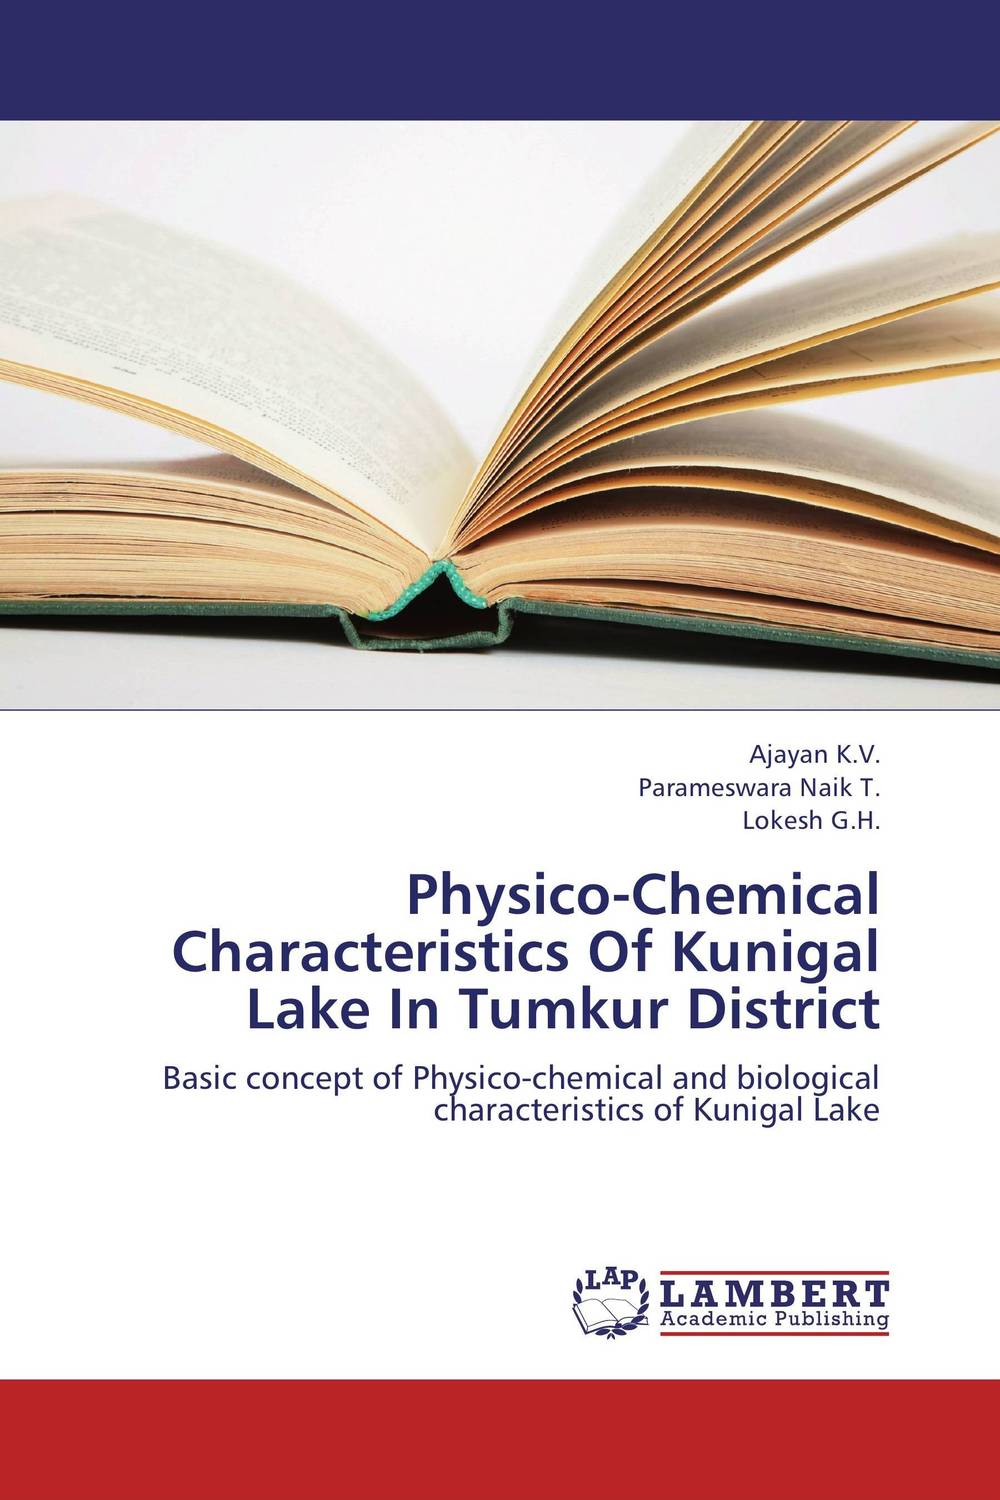 Physico-Chemical Characteristics Of Kunigal Lake In Tumkur District